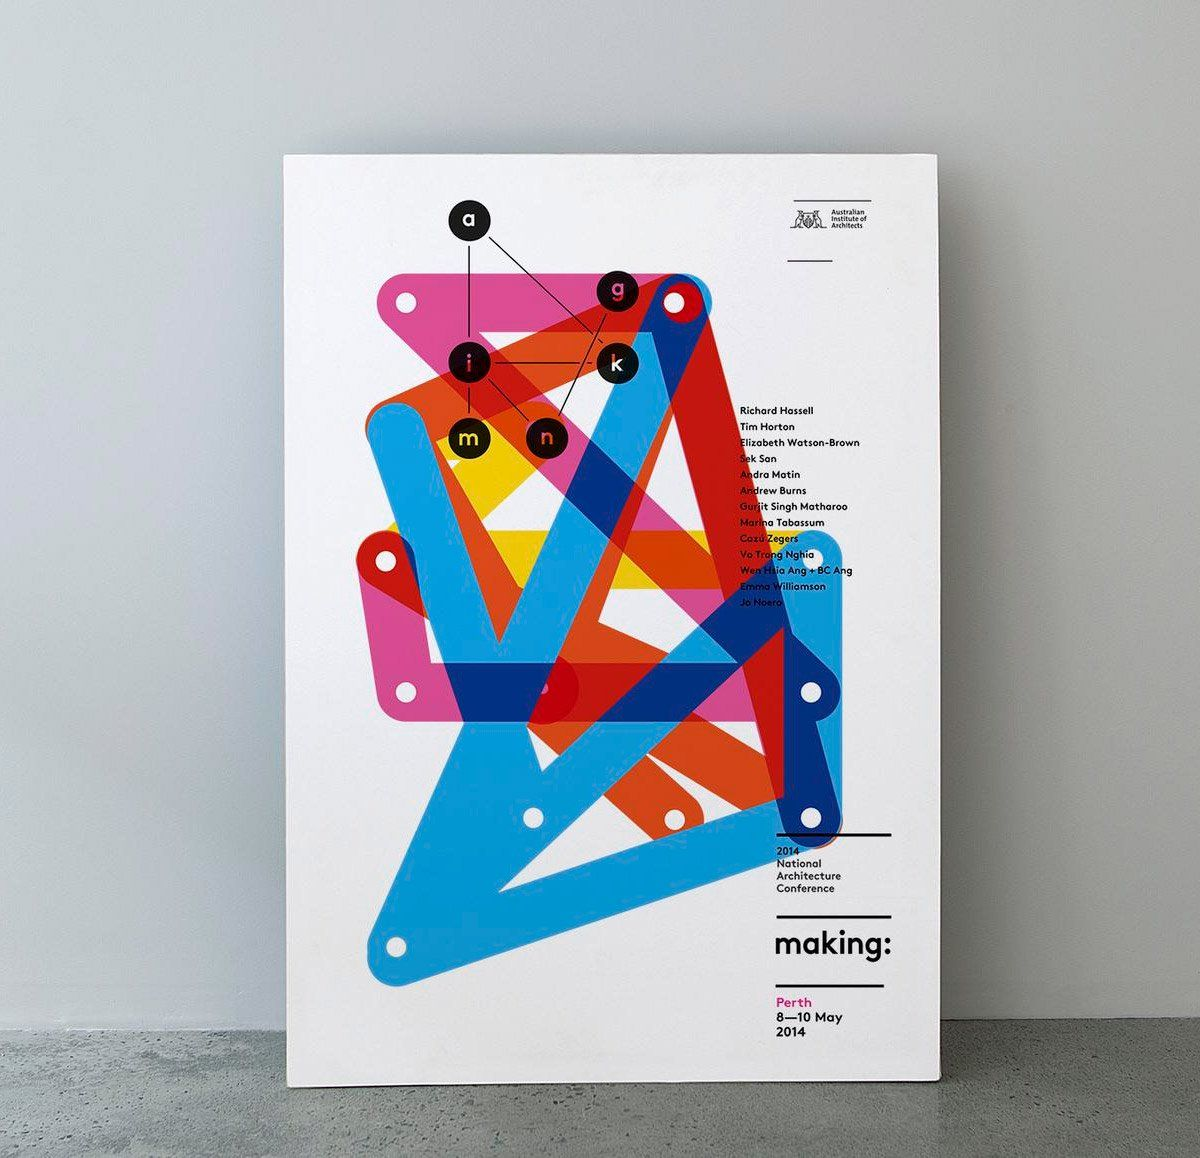 Layout Graphic Design Inspiration: Branding & Graphic Design By Garbett